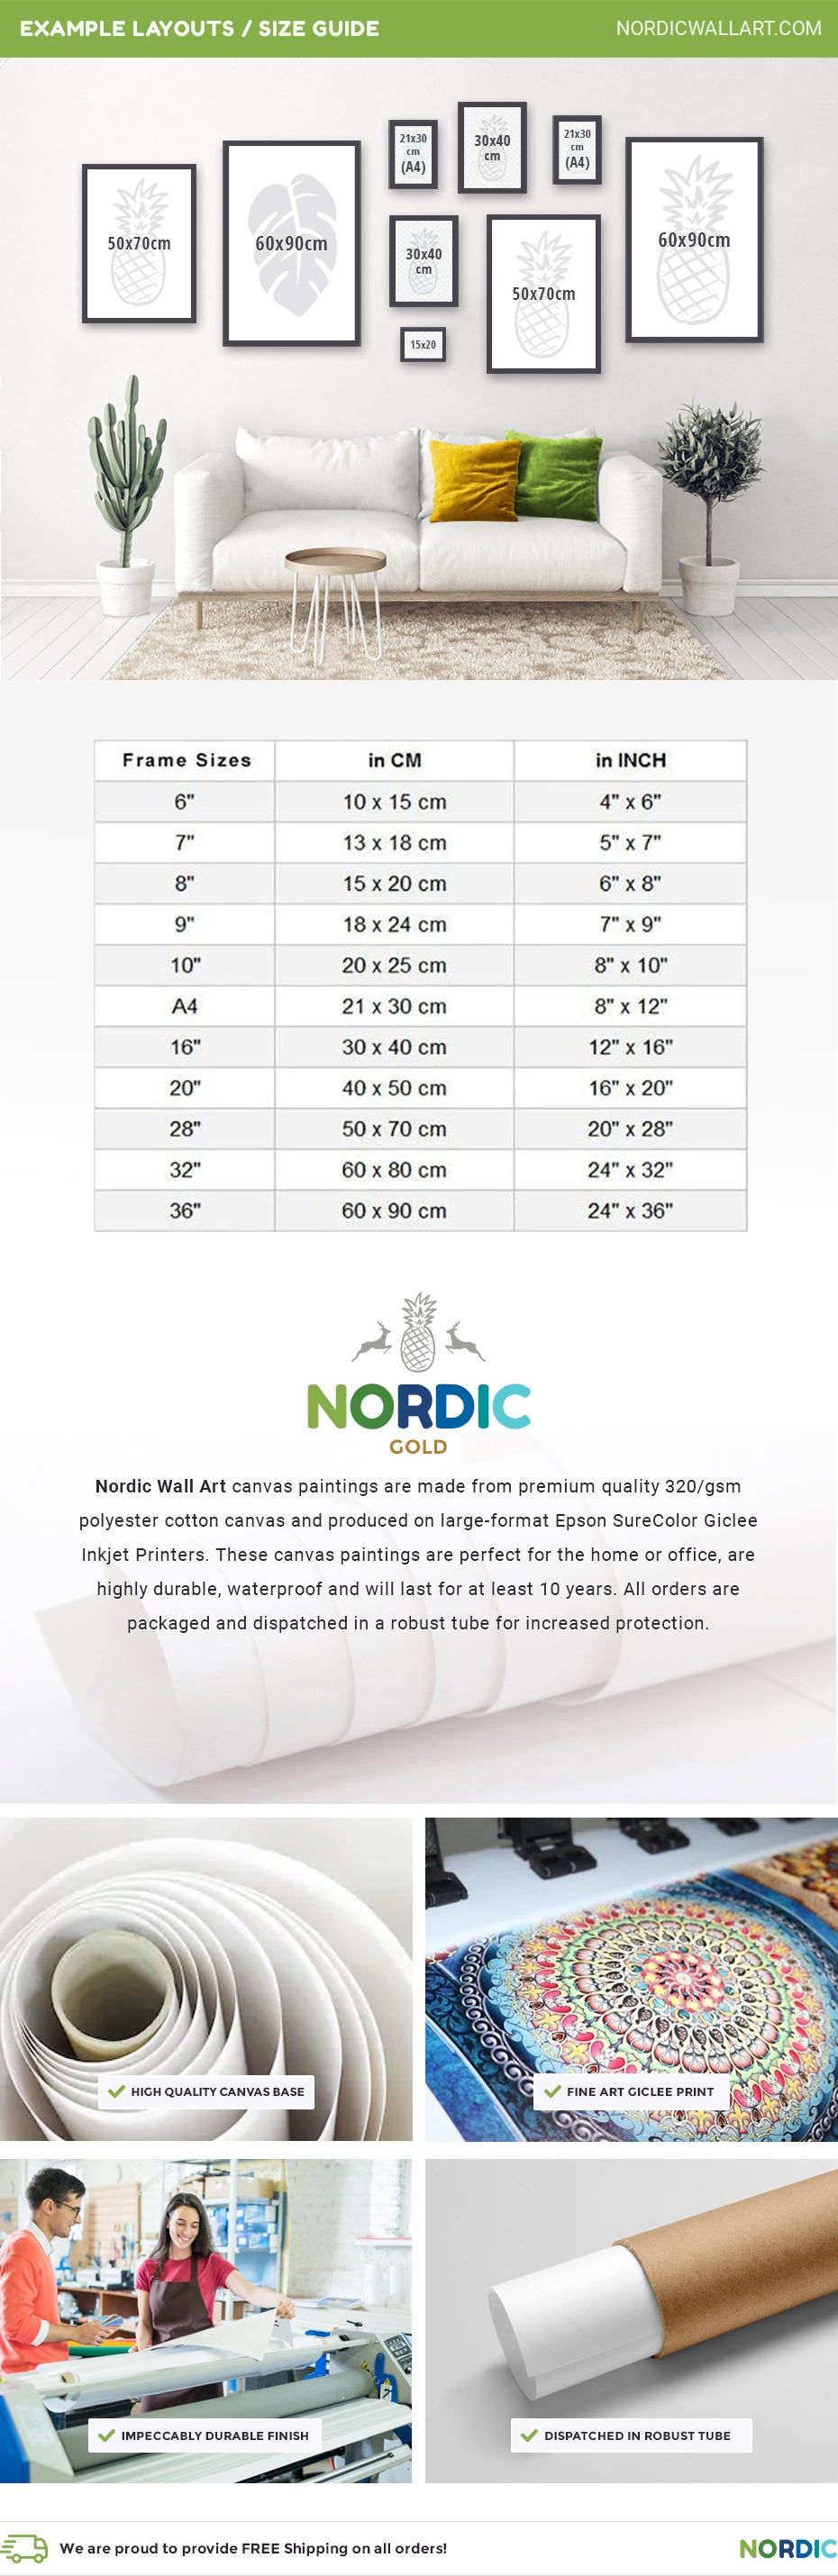 Nordic Wall Art canvas paintings are made from premium quality 320/gsm  polyester cotton canvas and produced on large-format Epson SureColor Giclee Inkjet Printers. These canvas paintings are perfect for the home or office, are highly durable, waterproof and will last for at least 10 years. All orders are packaged and dispatched in a robust tube for increased protection